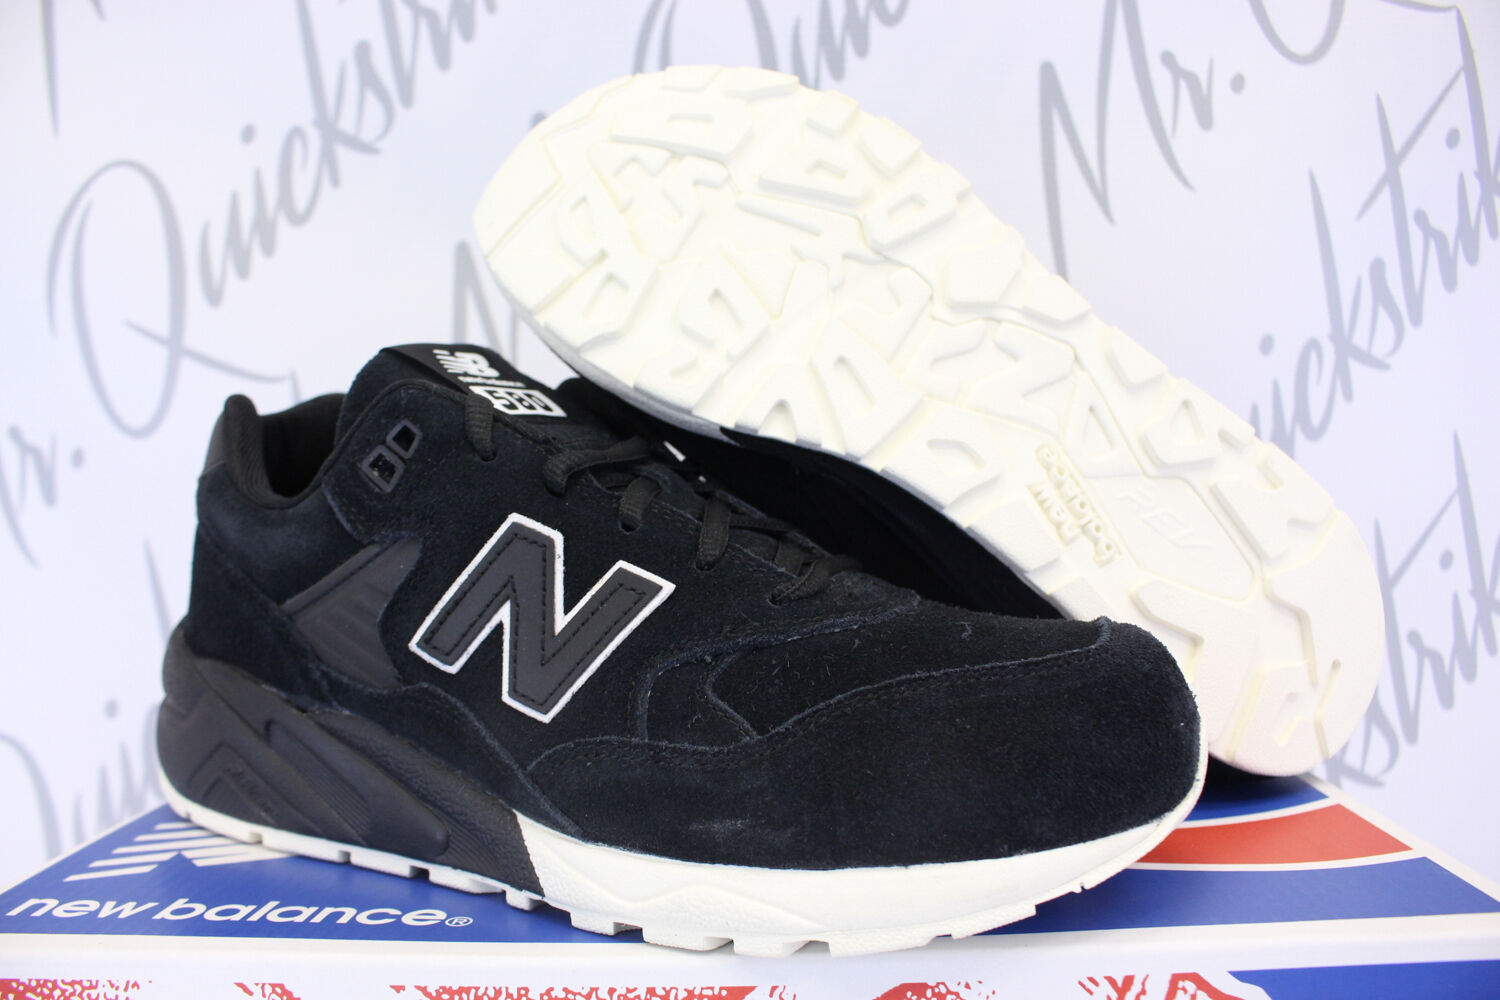 NEW BALANCE 580 SZ 8 GREY LIFESTYLE TONAL PACK BLACK GREY 8 WHITE MRT580BV 2638cf